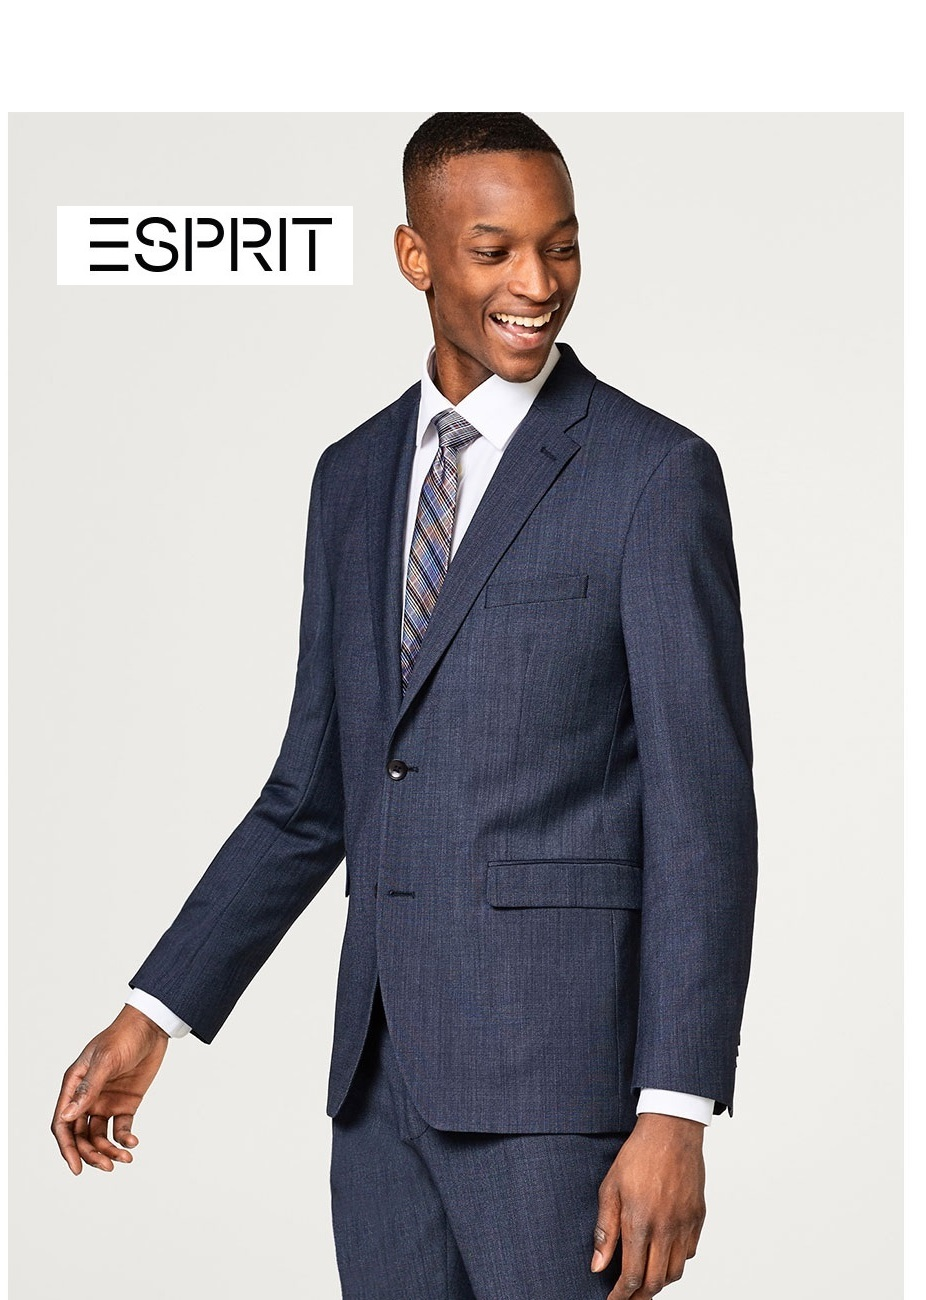 ESPRIT - men's suits